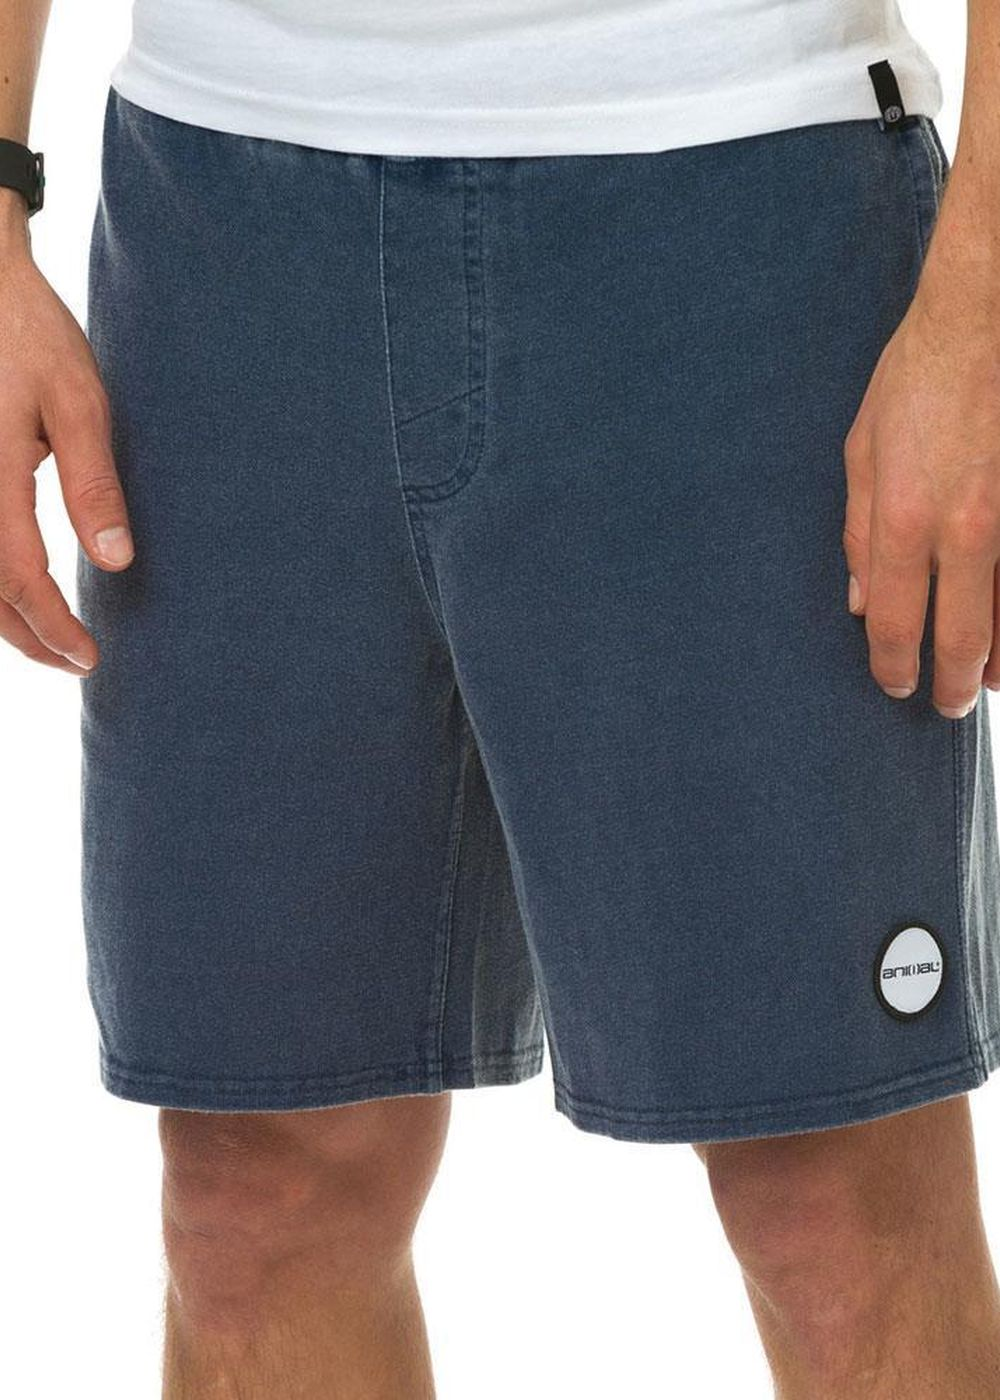 ANIMAL ARCOST TRACK SHORTS Indigo